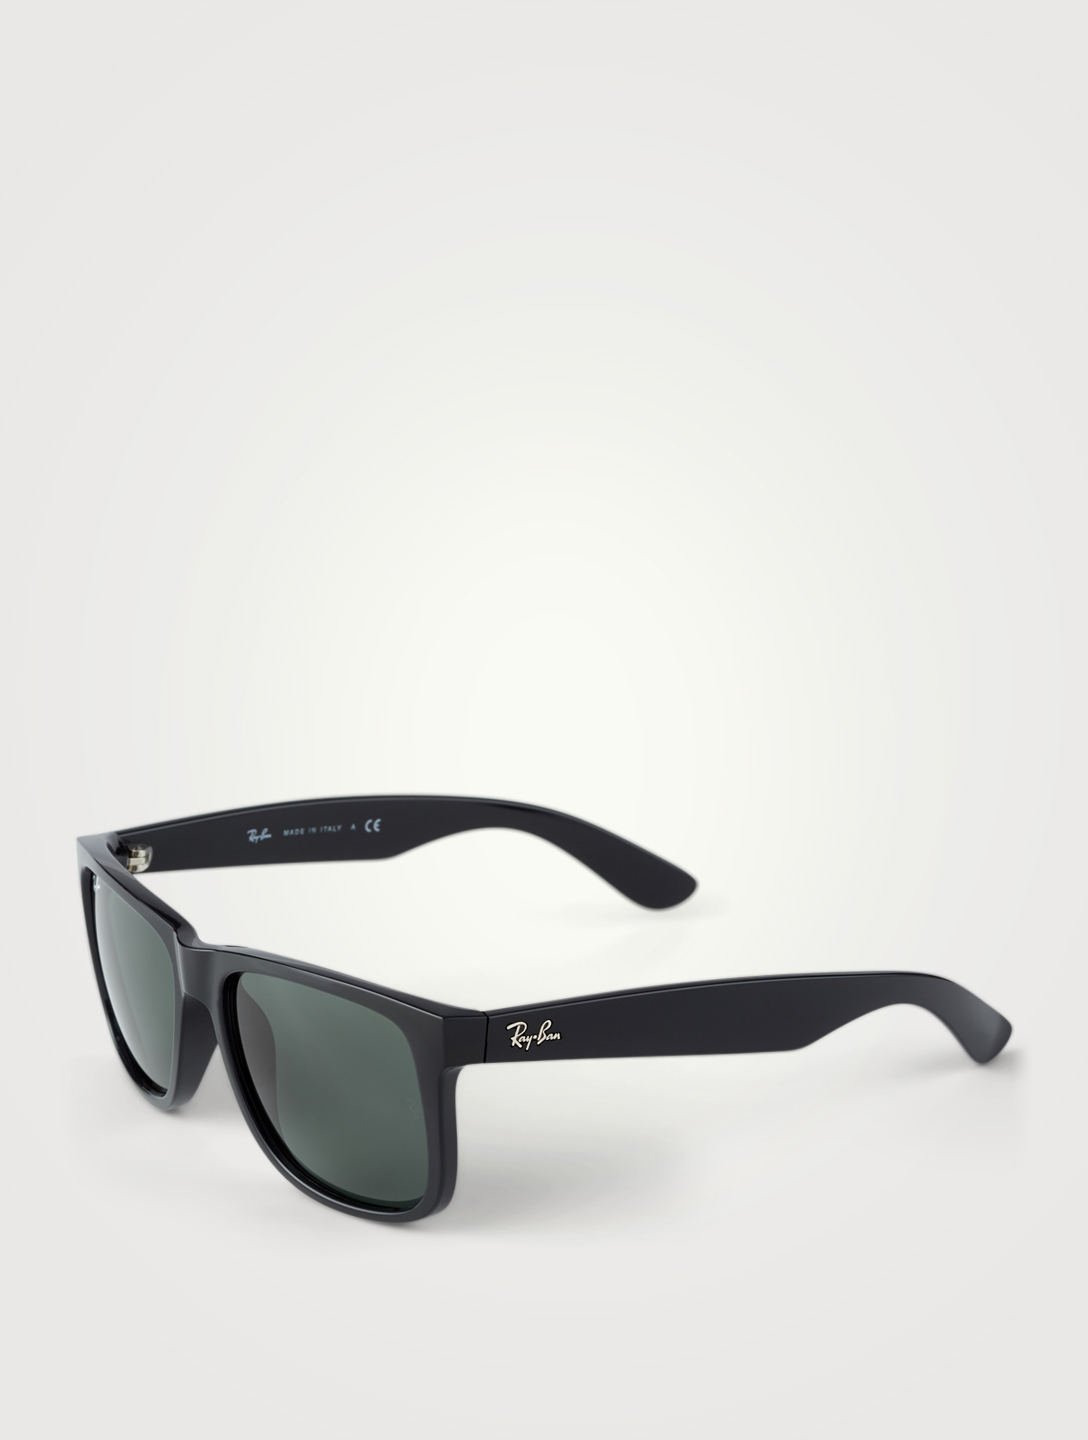 RAY-BAN Justin Classic Square Sunglasses Men's Black